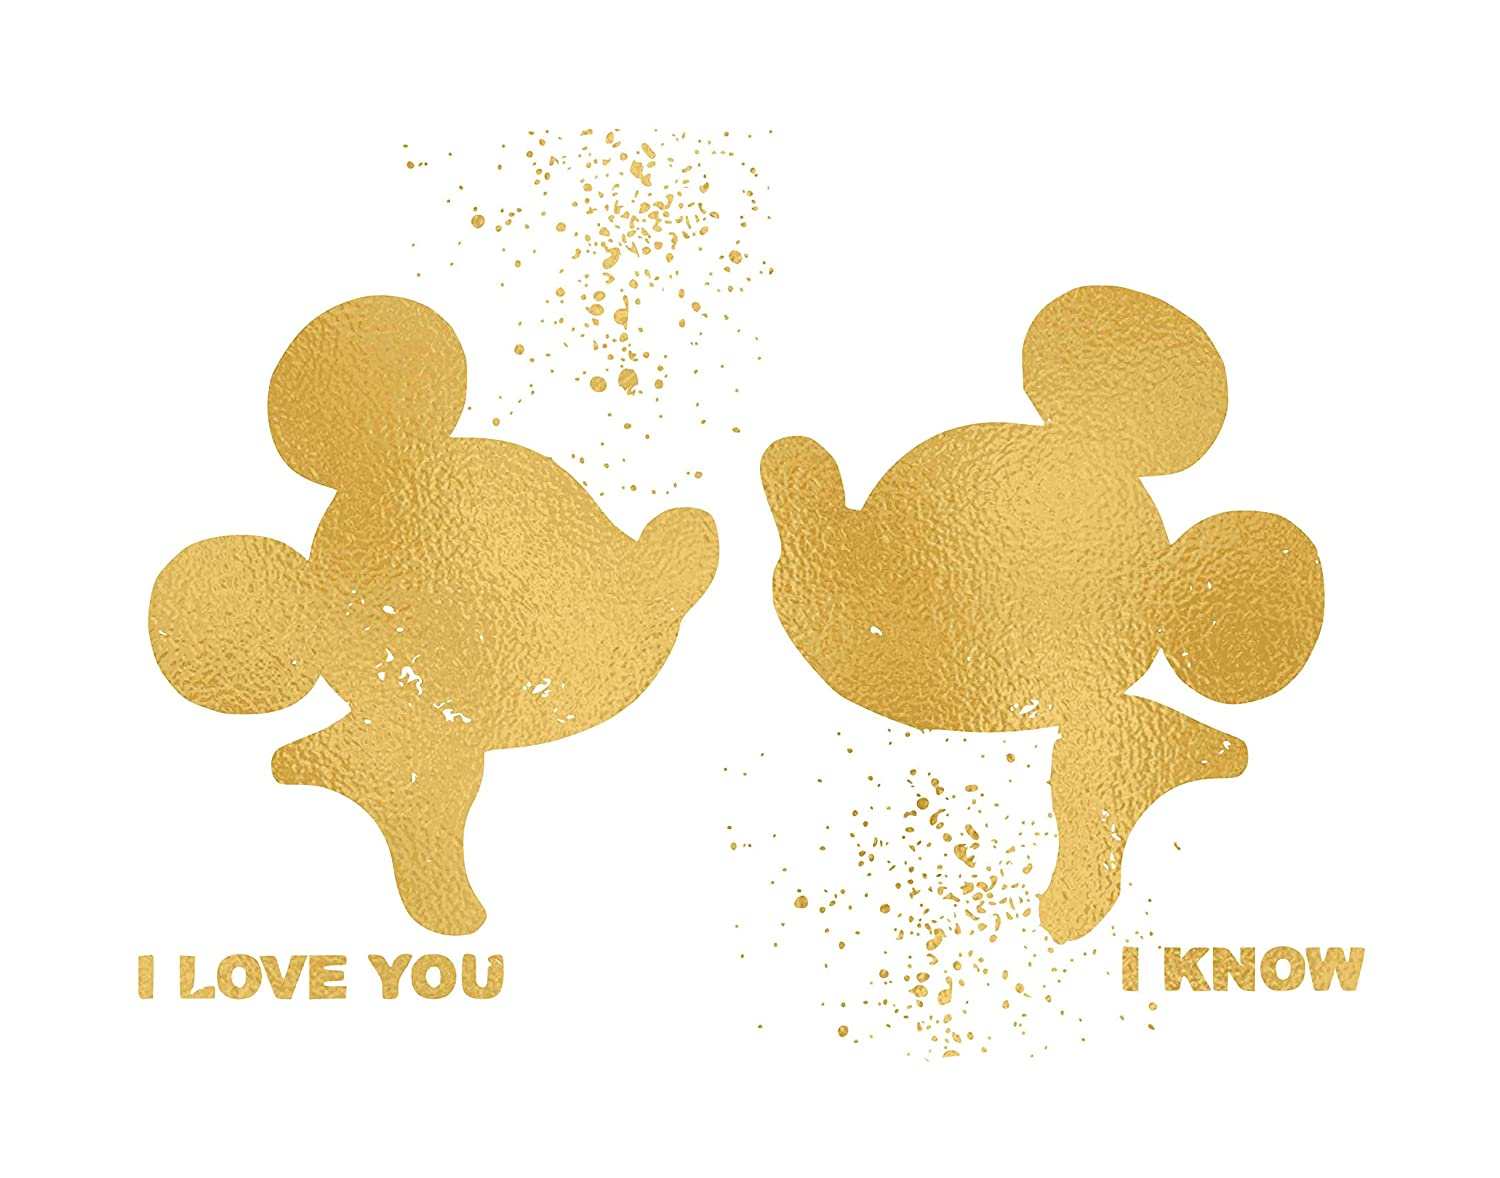 8x10, Gold Home Art Print -Frame not included Made in USA Disney Inspired Poster Print Photo Quality Inspired by Mickey and Minnie Mouse Love and Friendship